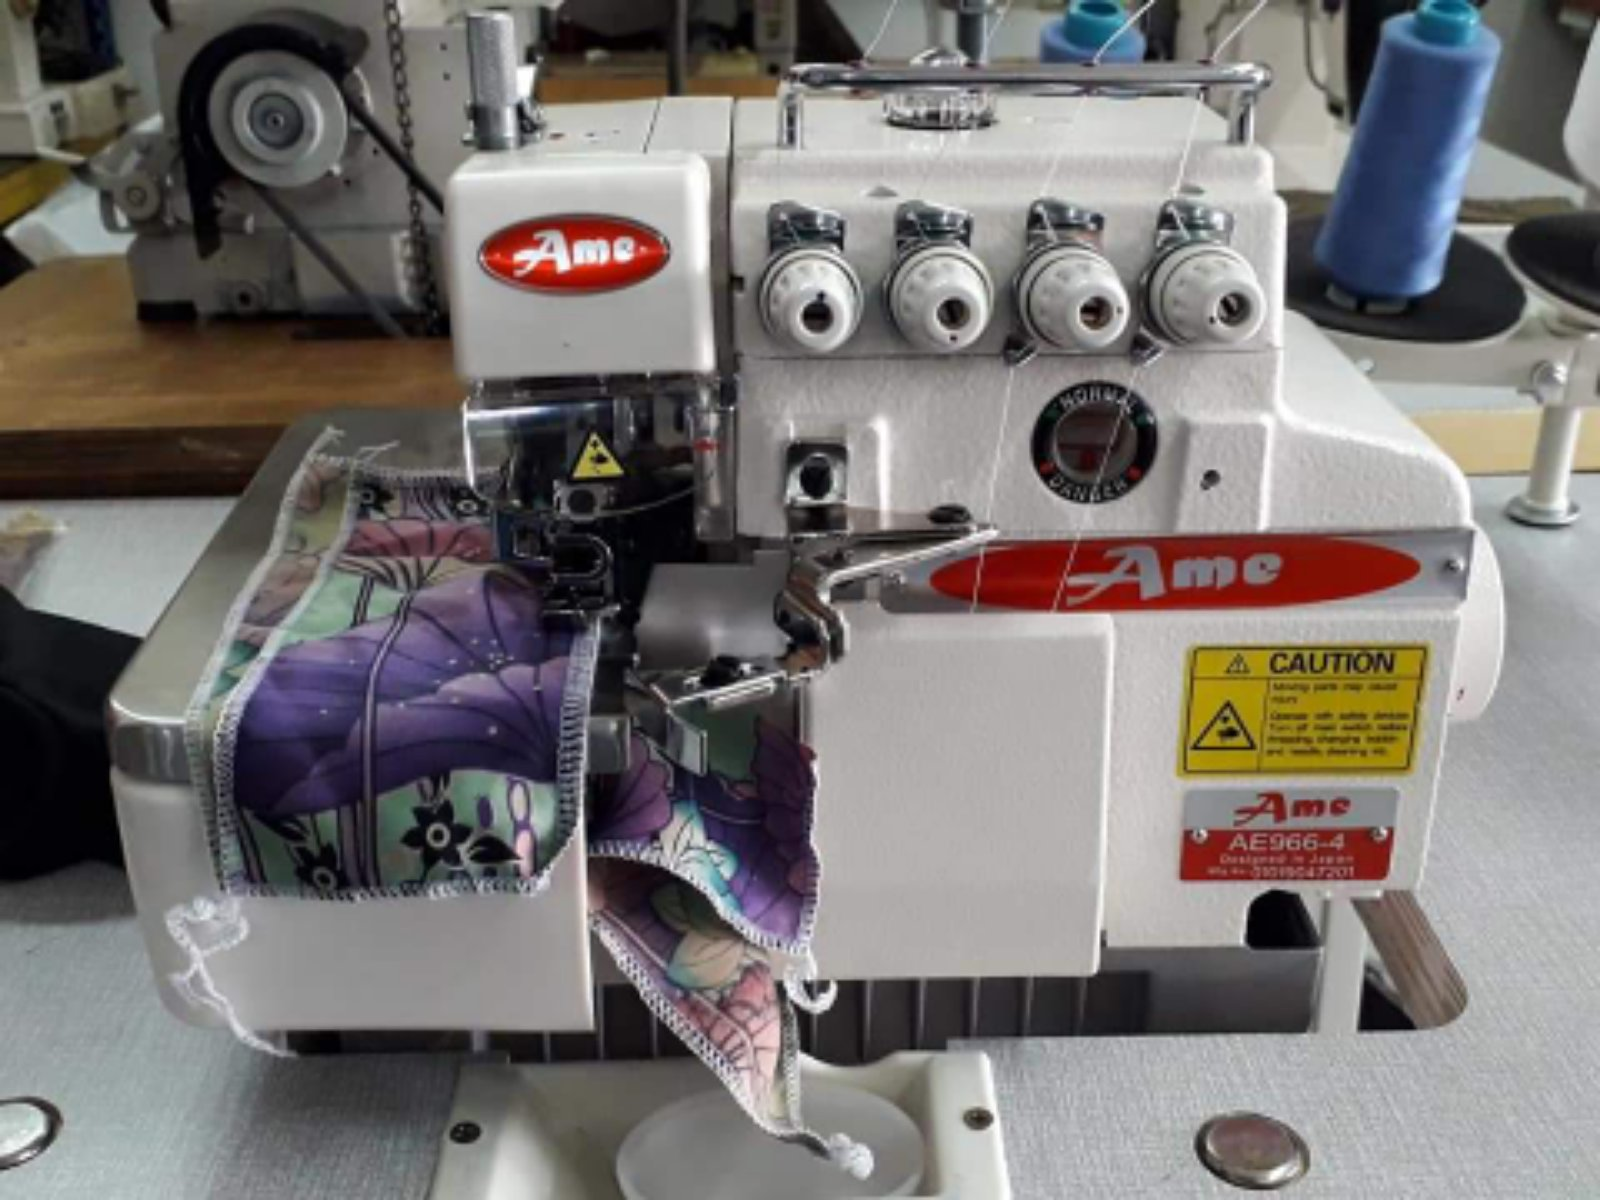 Ame Industrial Overlock Sewing Machine